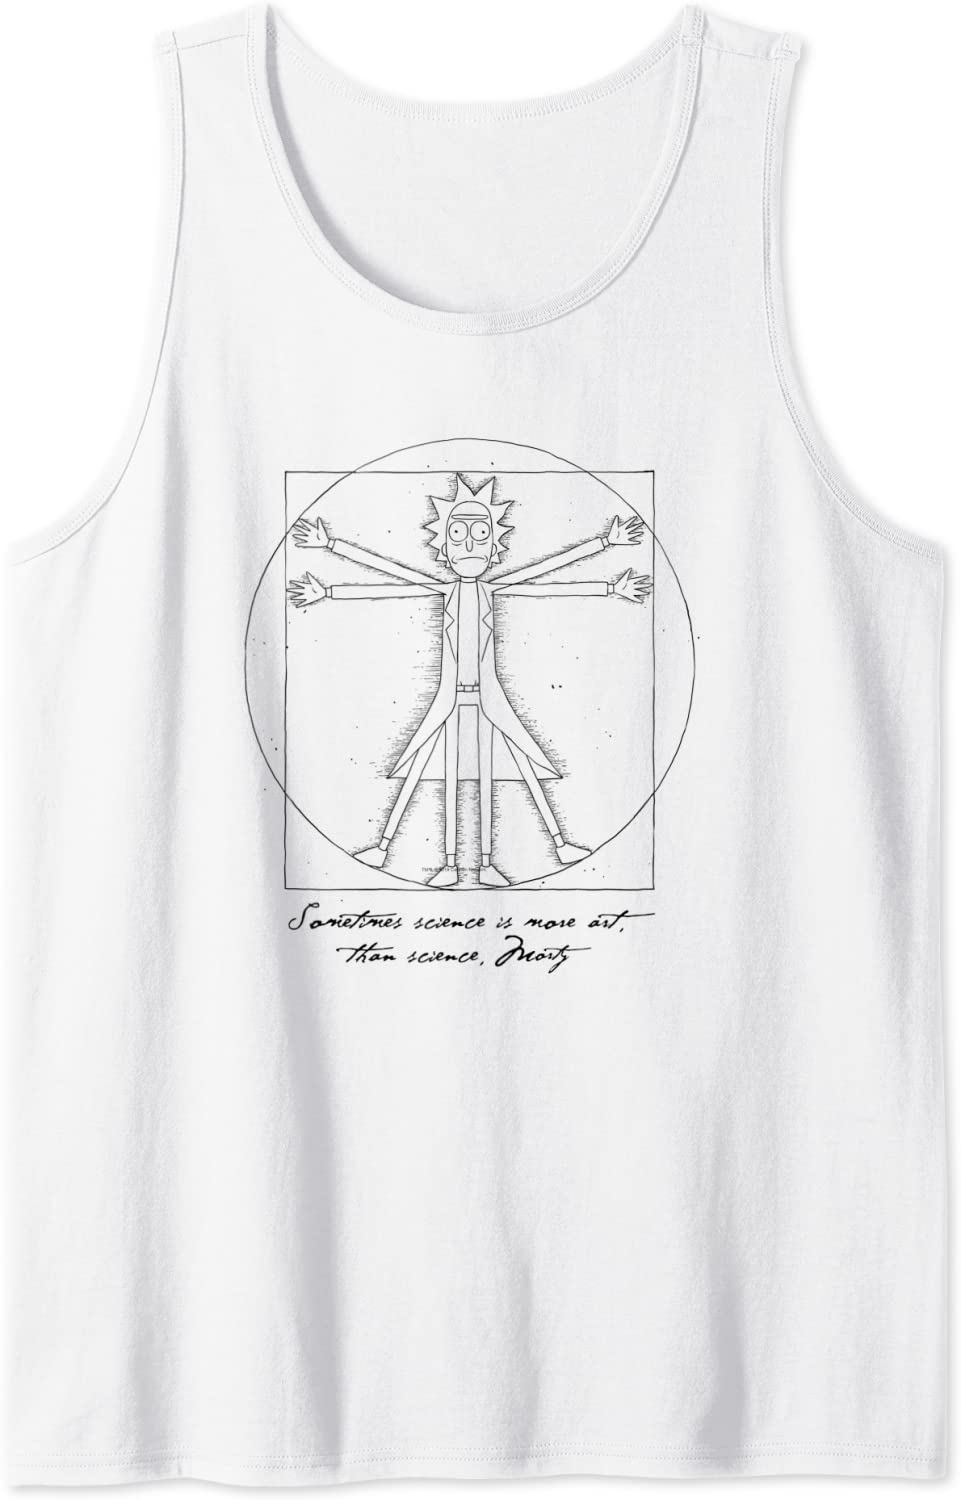 Rick and Morty More Sales of SALE items from Japan's largest assortment new works Art Tank Science than Top